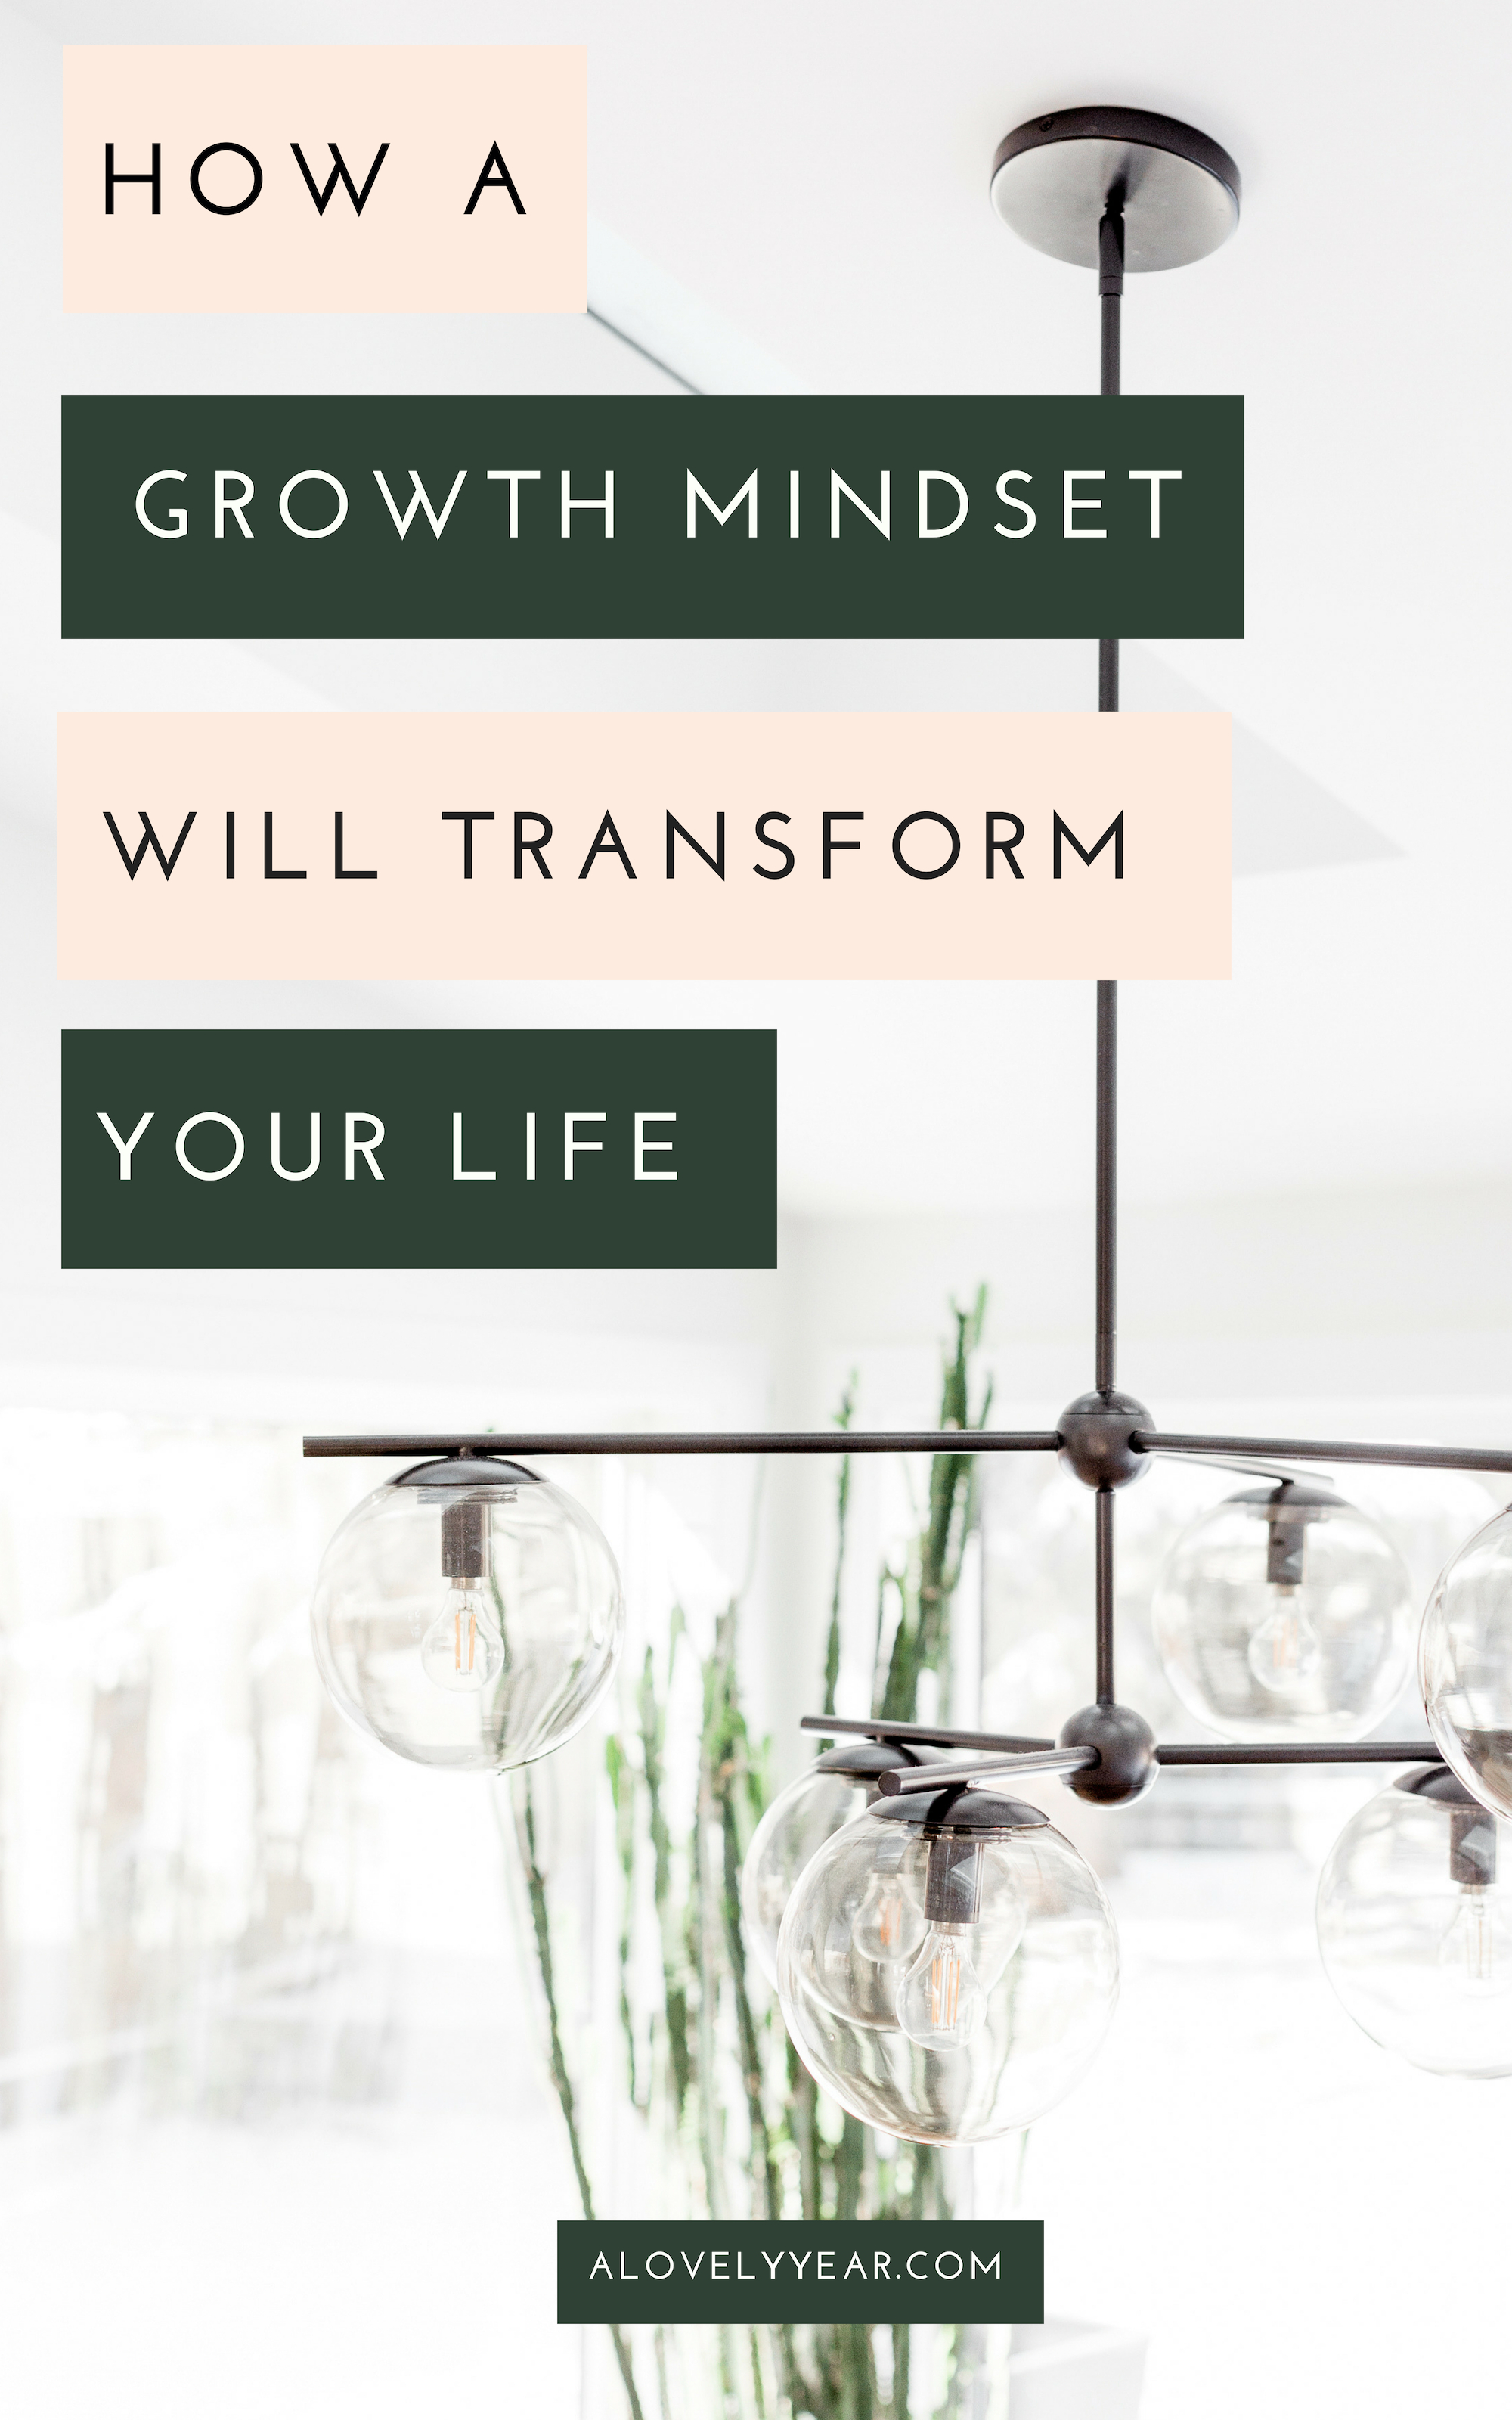 How a growth mindset will transform your life